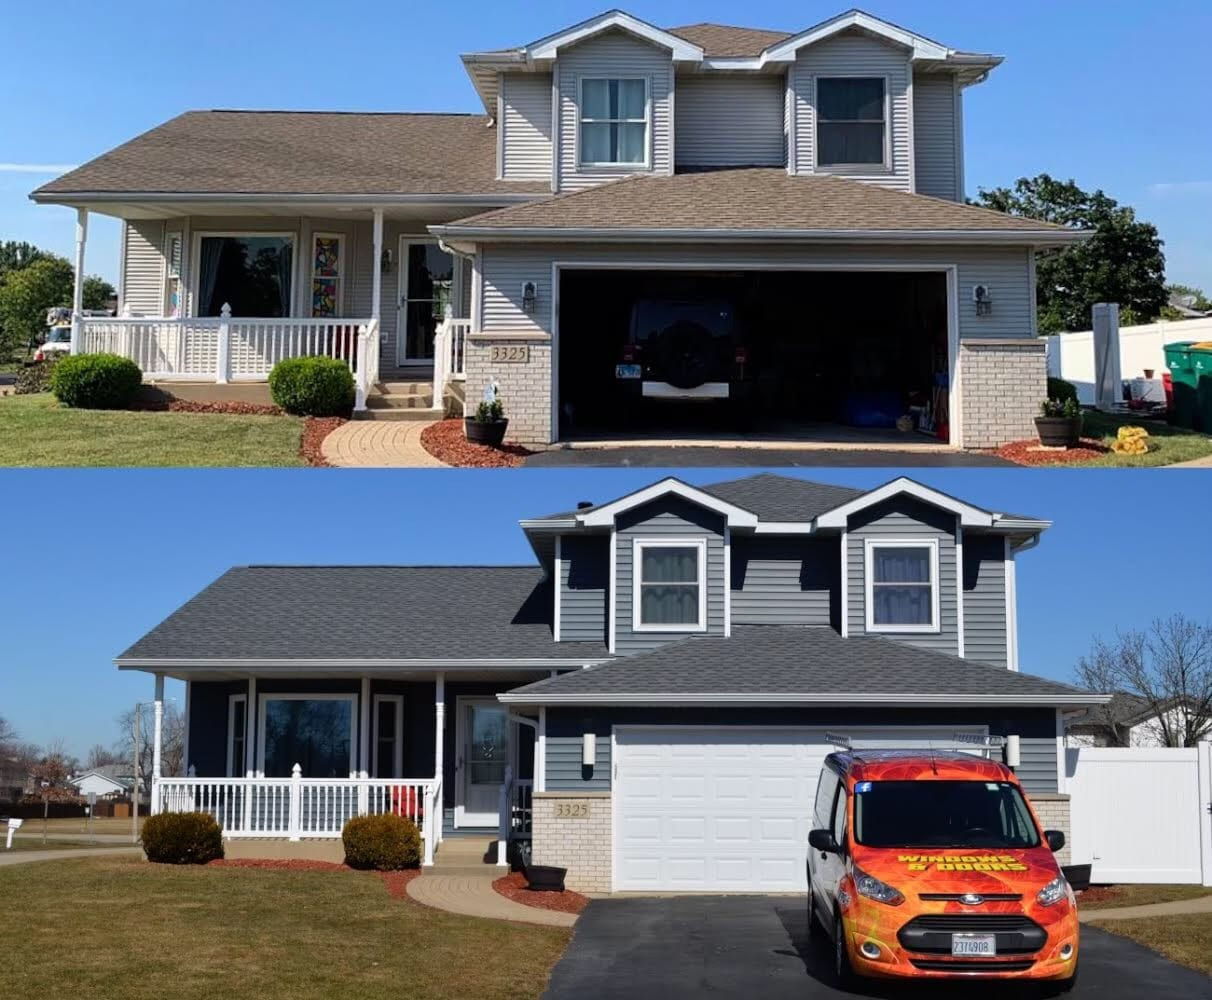 Naperville roofers